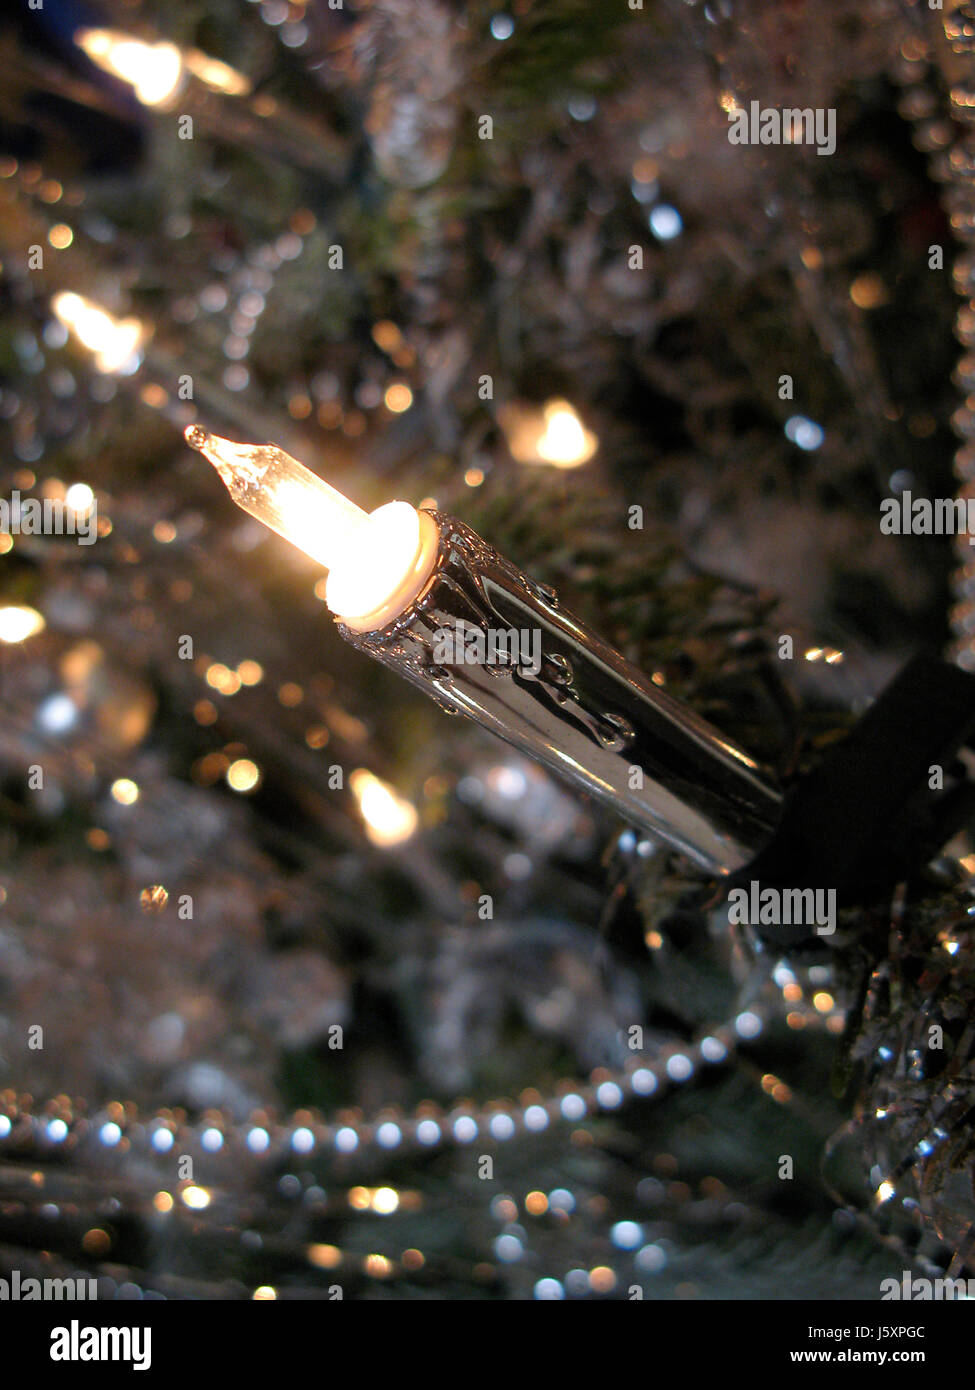 Electric Candle On The Christmas Tree Stock Photo 141344684 Alamy